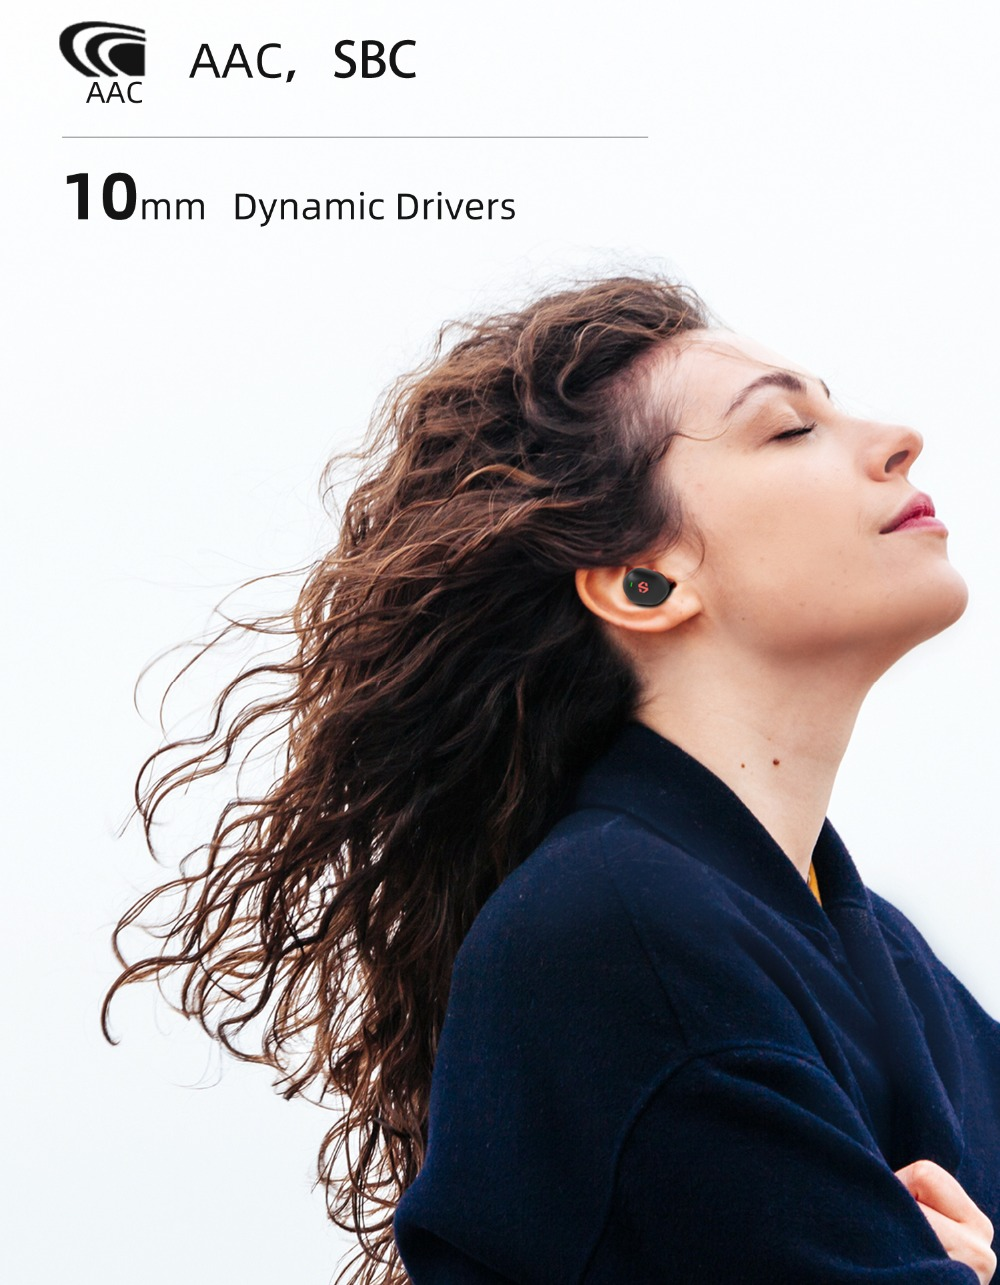 dyplay ANC Shield Bluetooth 5.0 TWS Earphones Active Noice Cancelling 45H Playtime Independent Use Airoha 1536 Auto Pairing